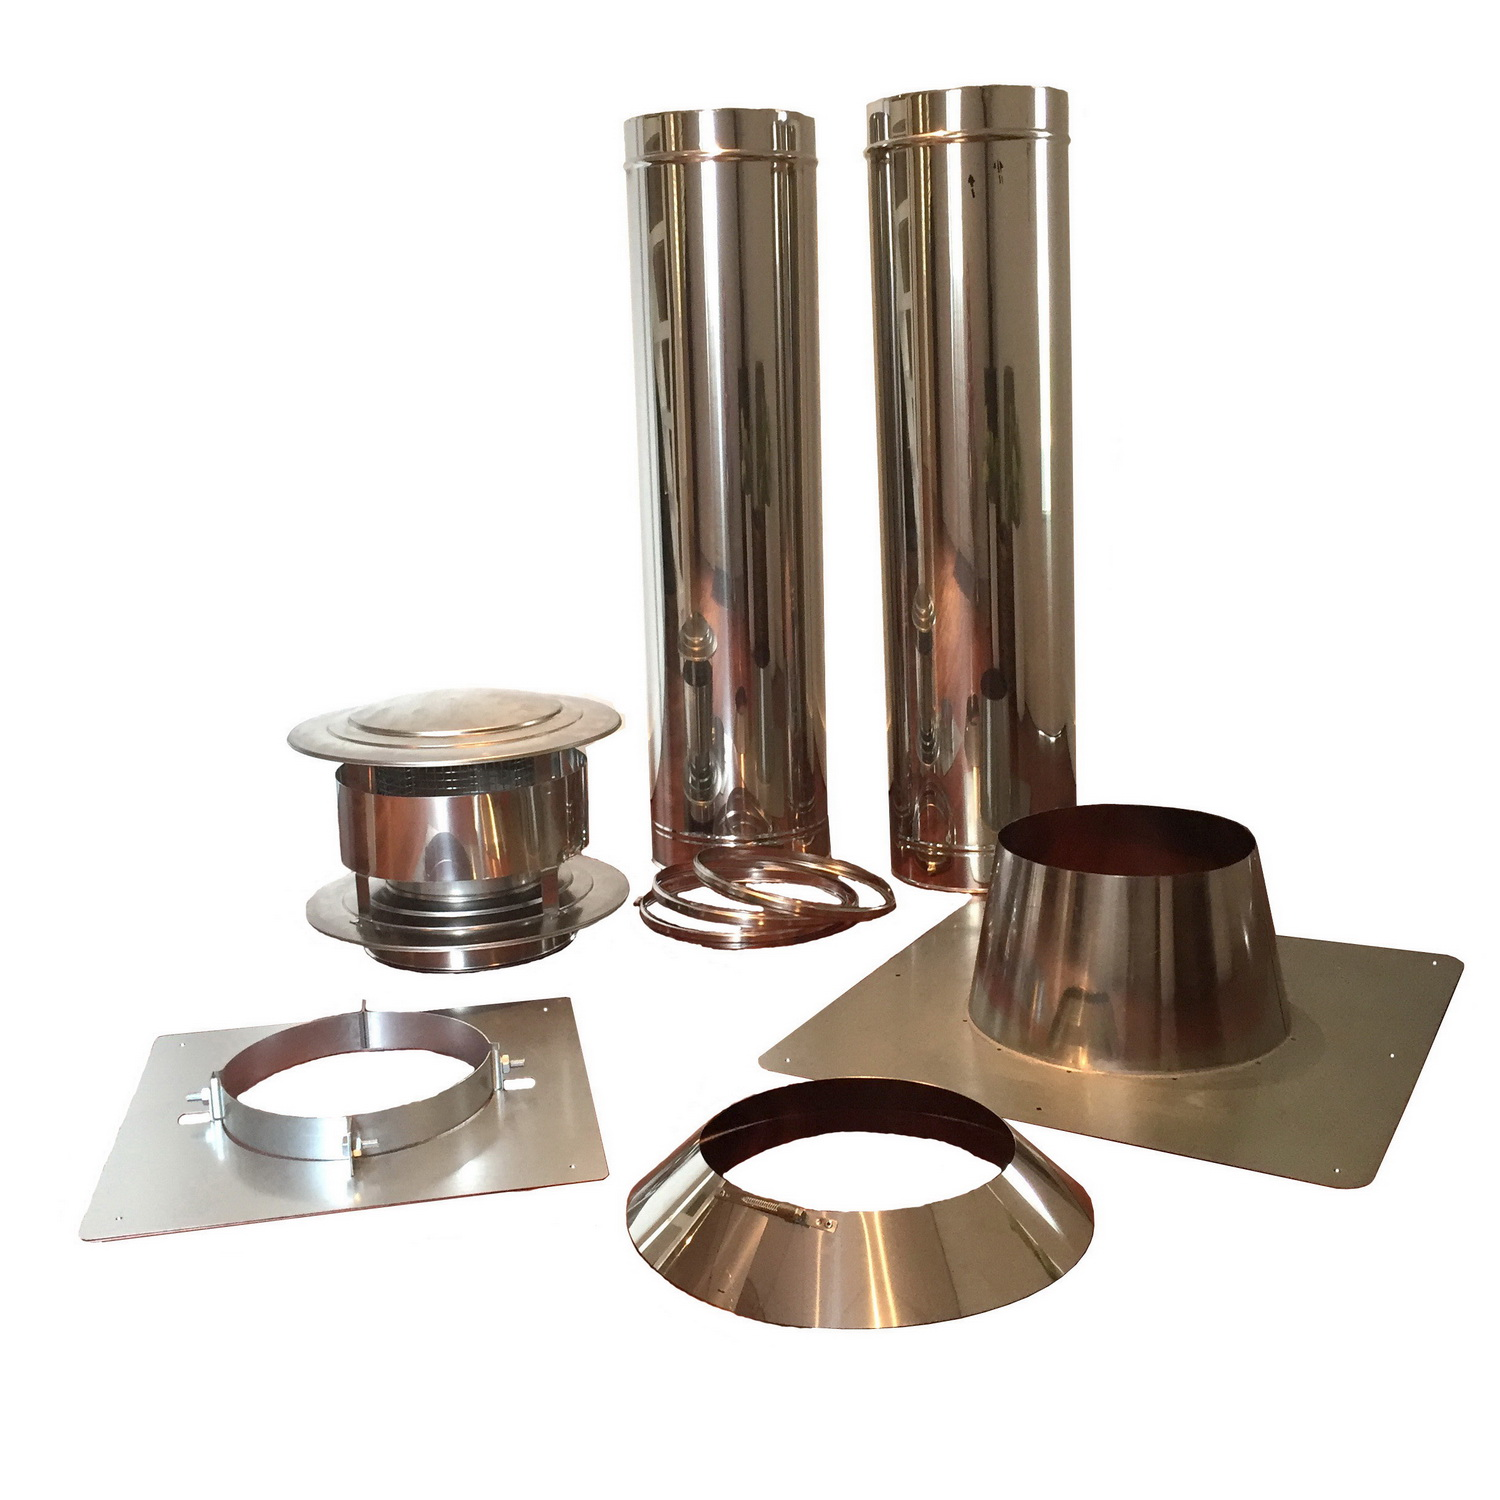 Double Wall Chimney set 150mm